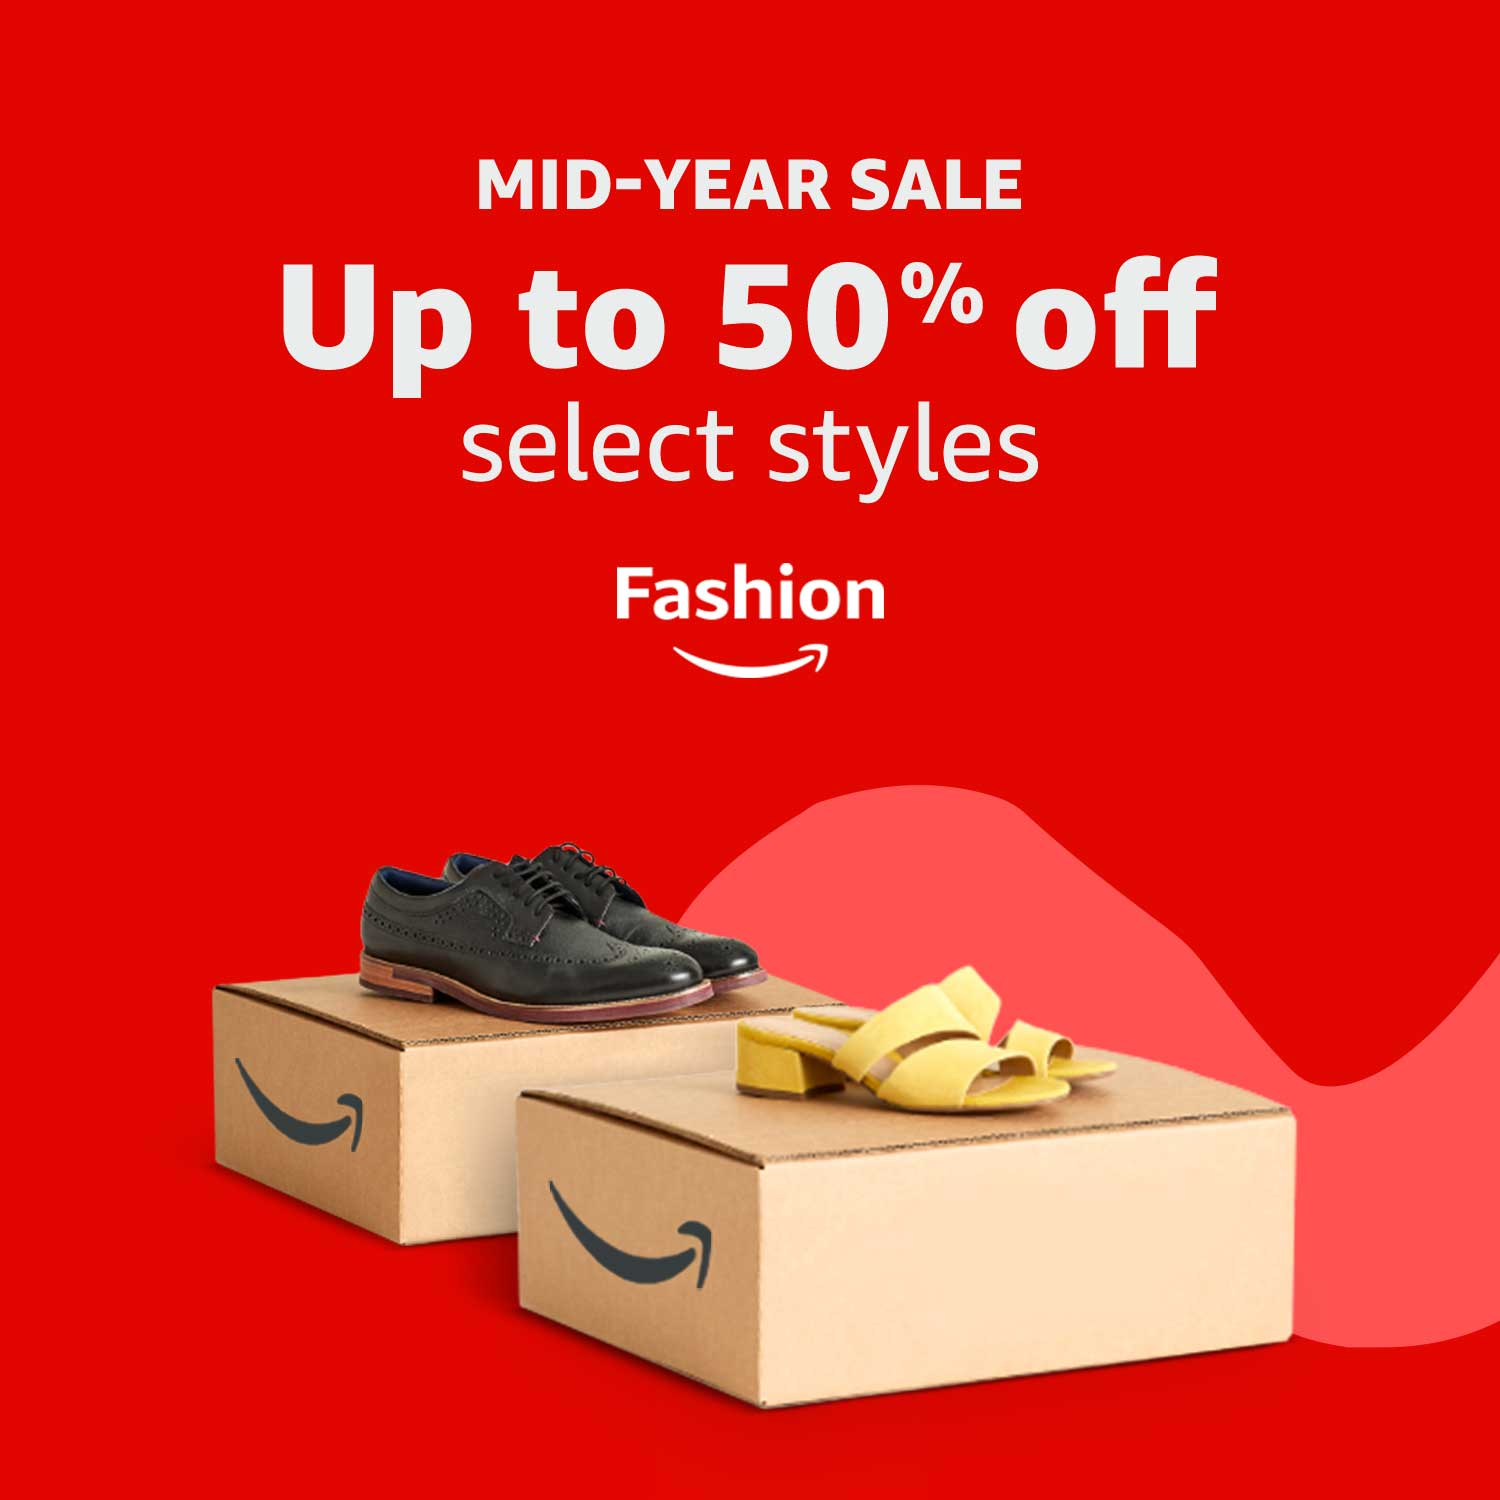 Shop the Clothing, Shoes & Accessories mid-year sale. Discount included in prices displayed.